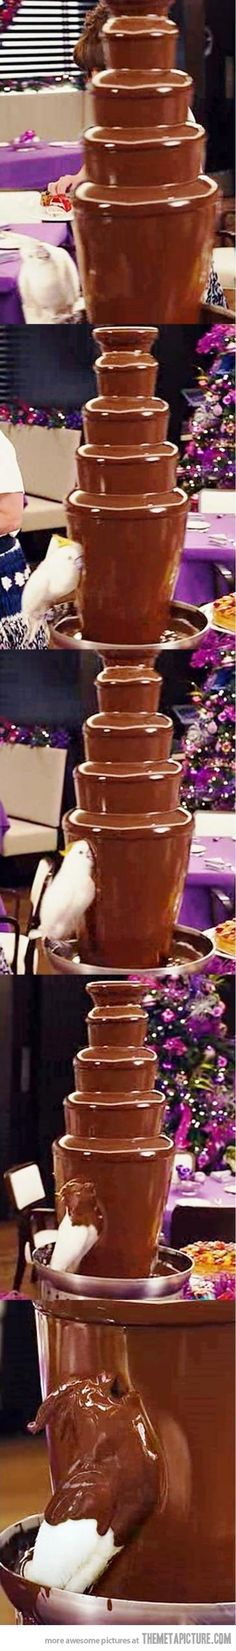 chocolate fountains, animals, dream, pet, bird baths, chocolate covered, parrot, thought, birds